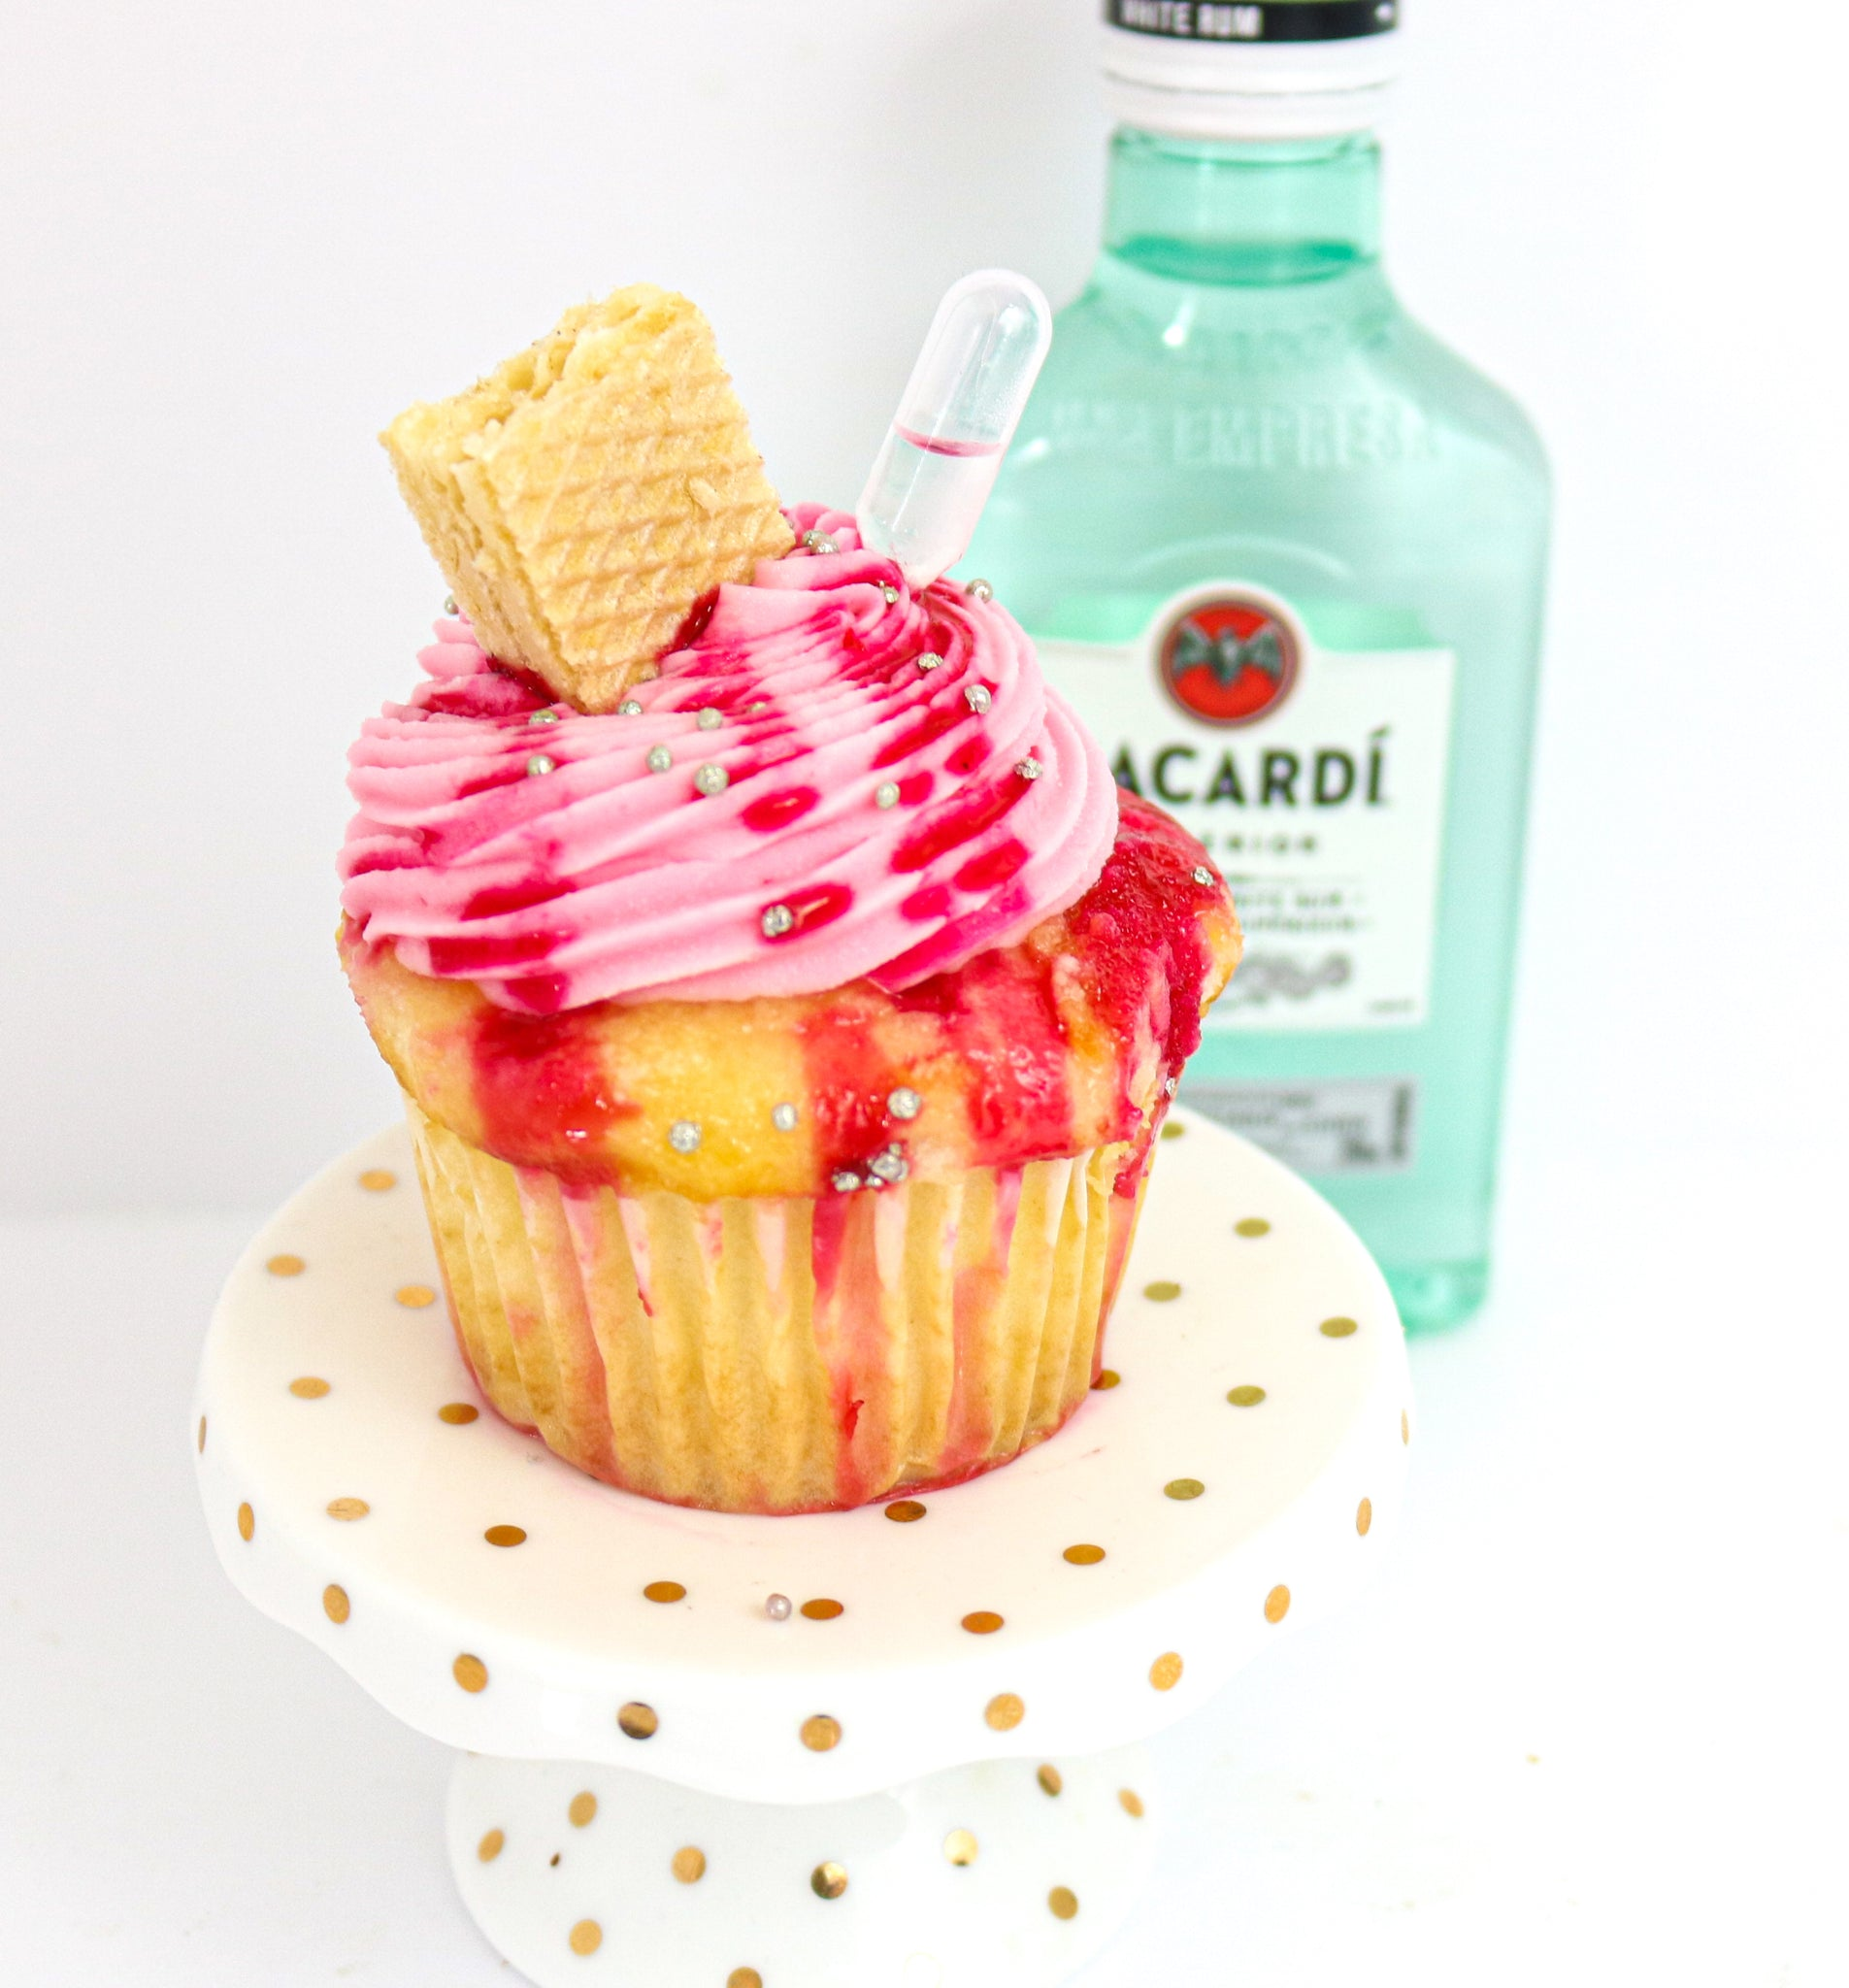 Strawberry Daiquiri Tipsy Cupcakes 12 (contains alcohol)